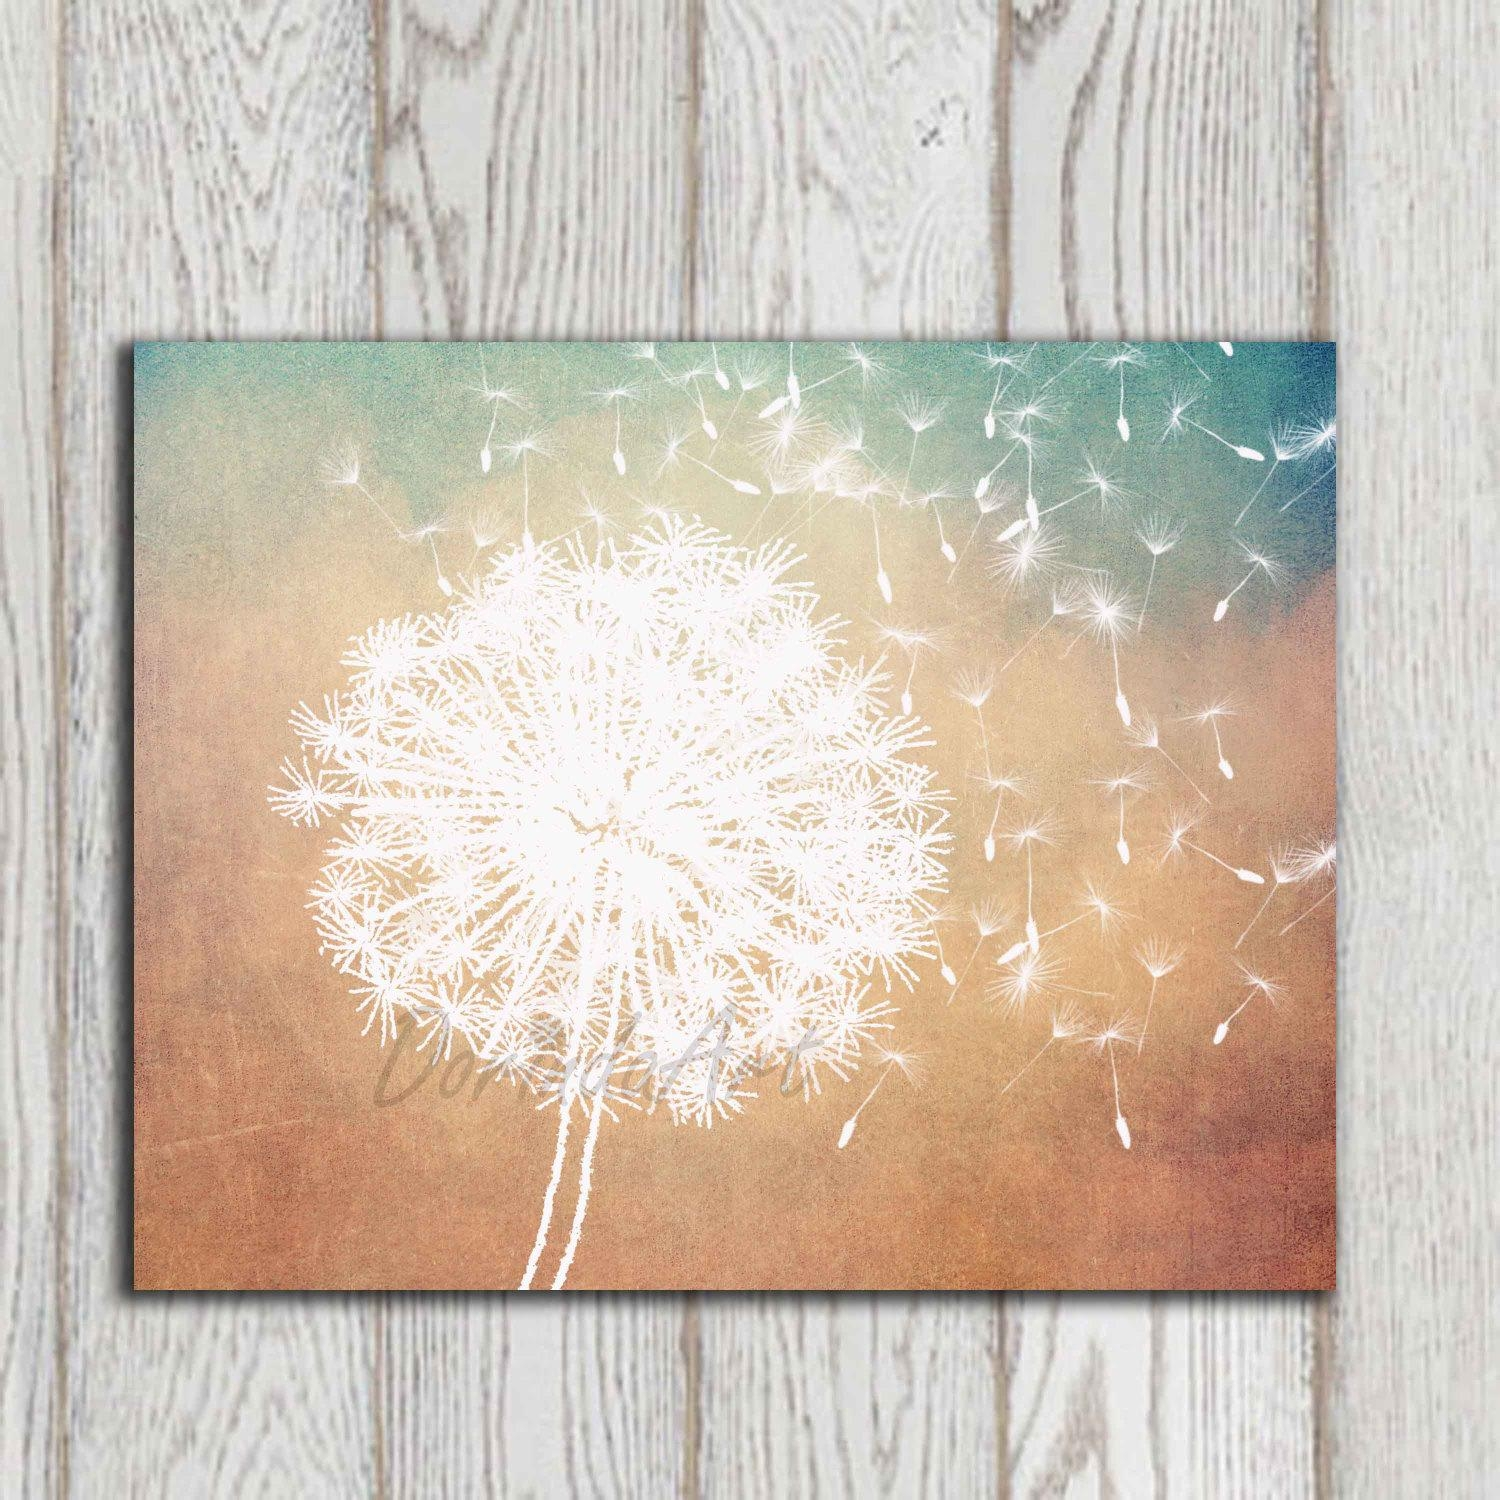 Dandelion Poster Print Dandelion Wall Art Printable Copper With Turquoise And Brown Wall Art (Image 8 of 20)